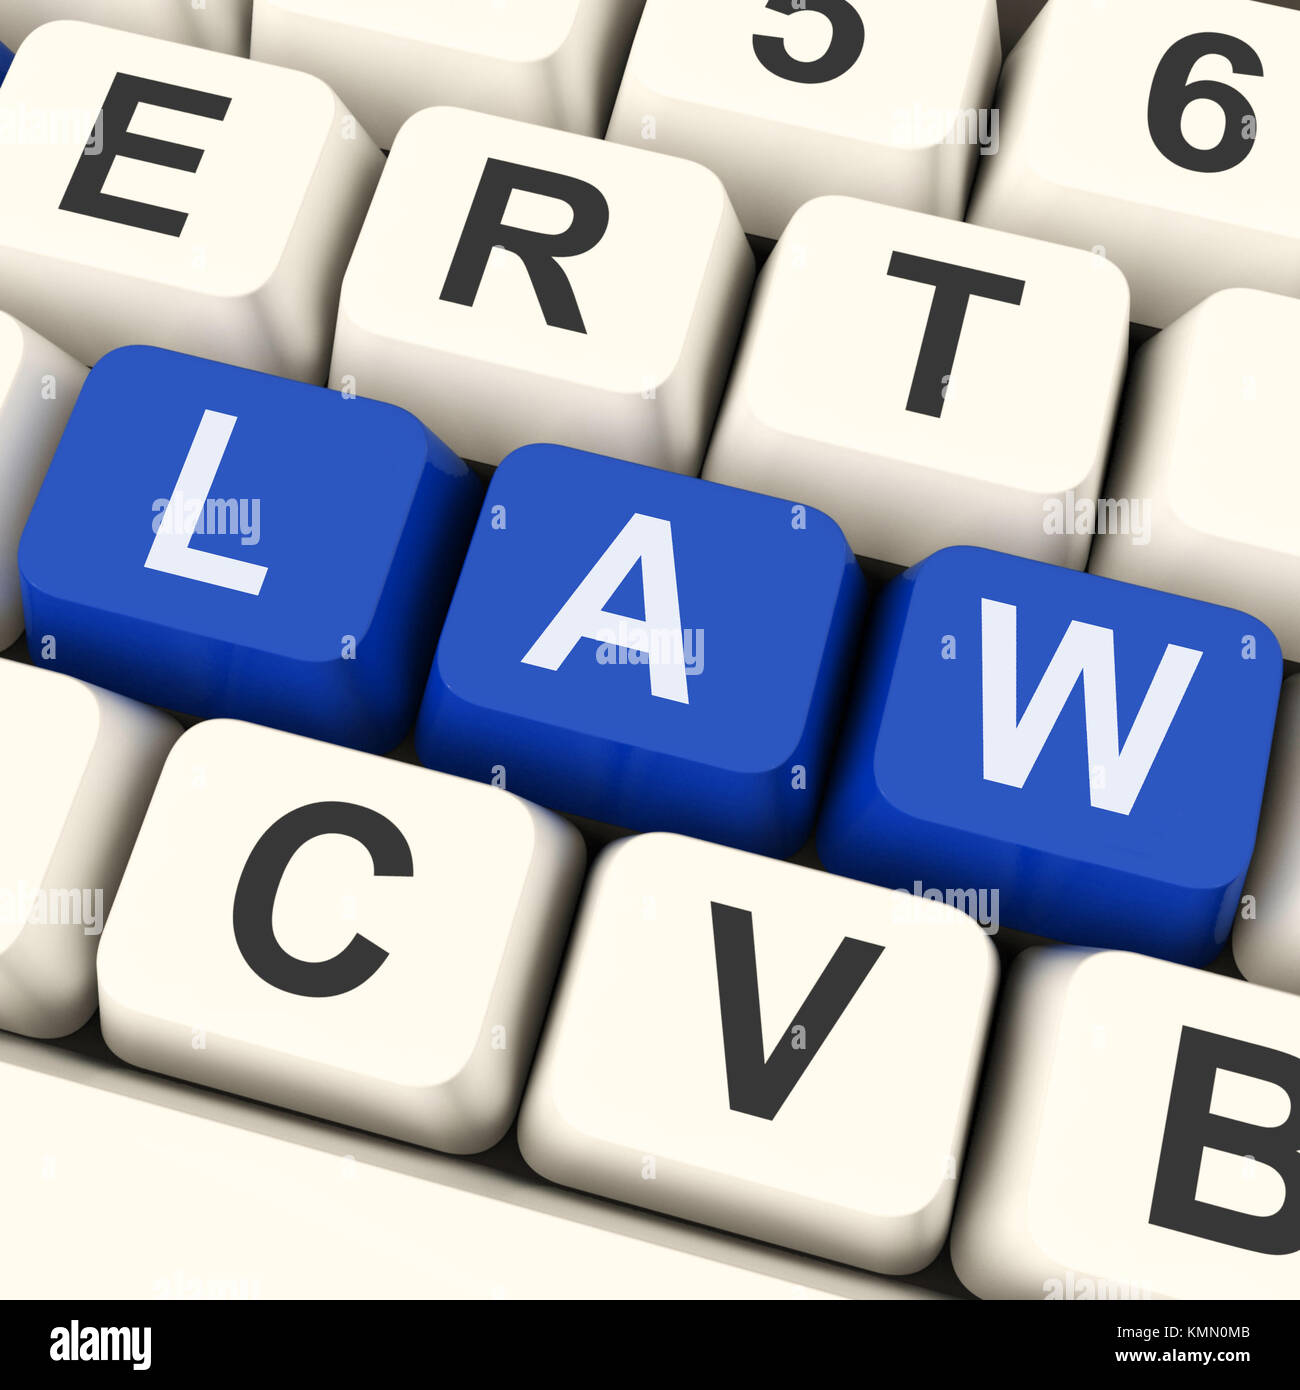 Law Key Meaning Legally Statute Or Judicial - Stock Image